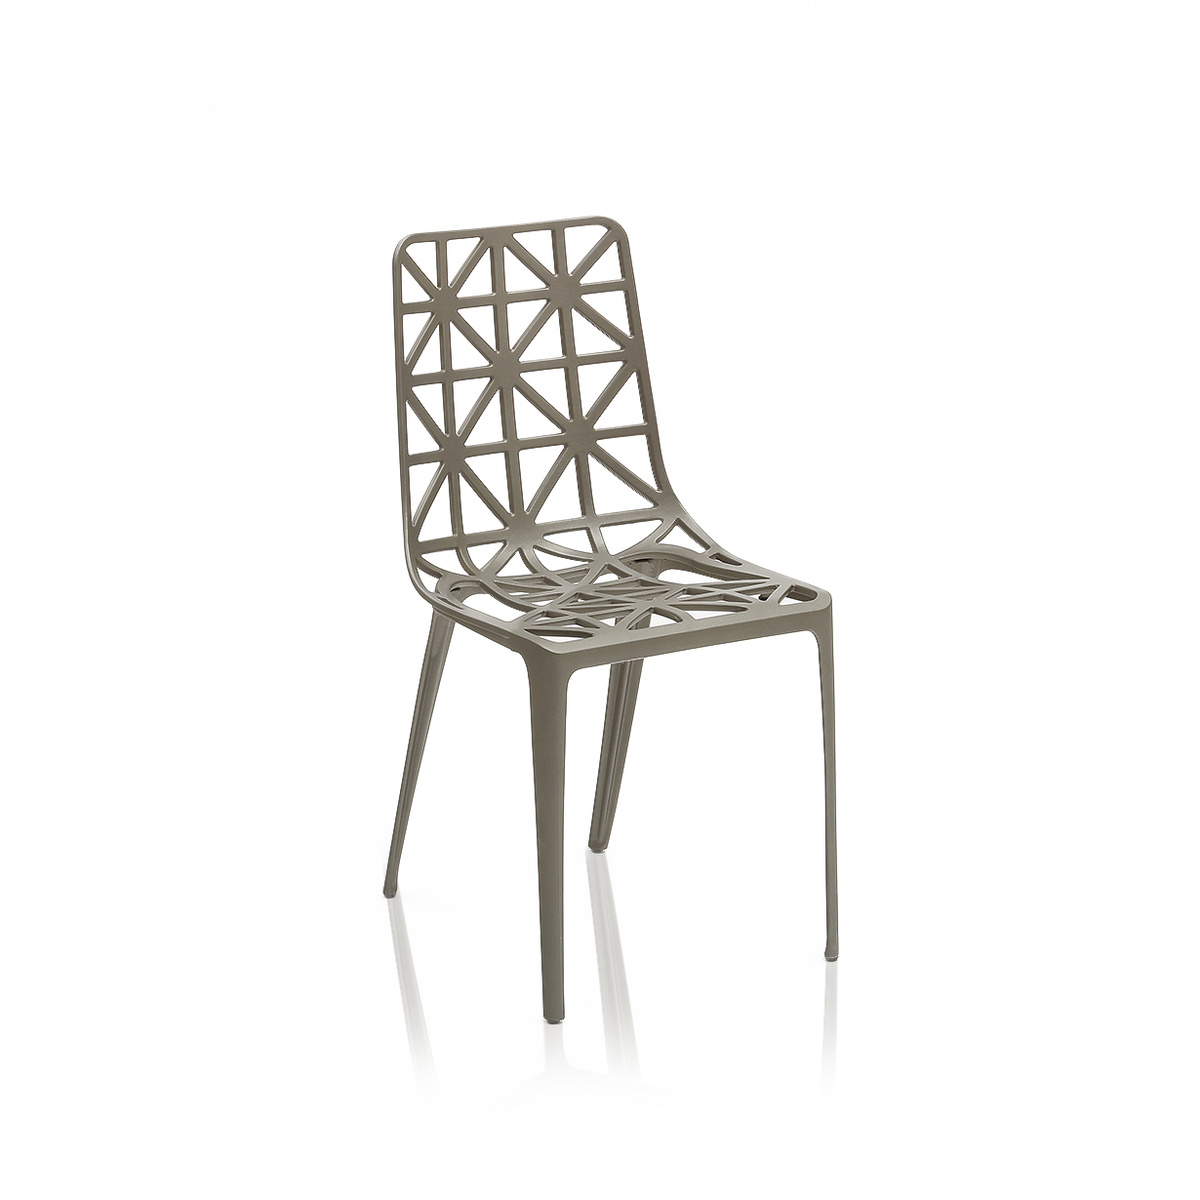 Chaise Tour Eiffel chair by Coedition  LOVEThESIGN